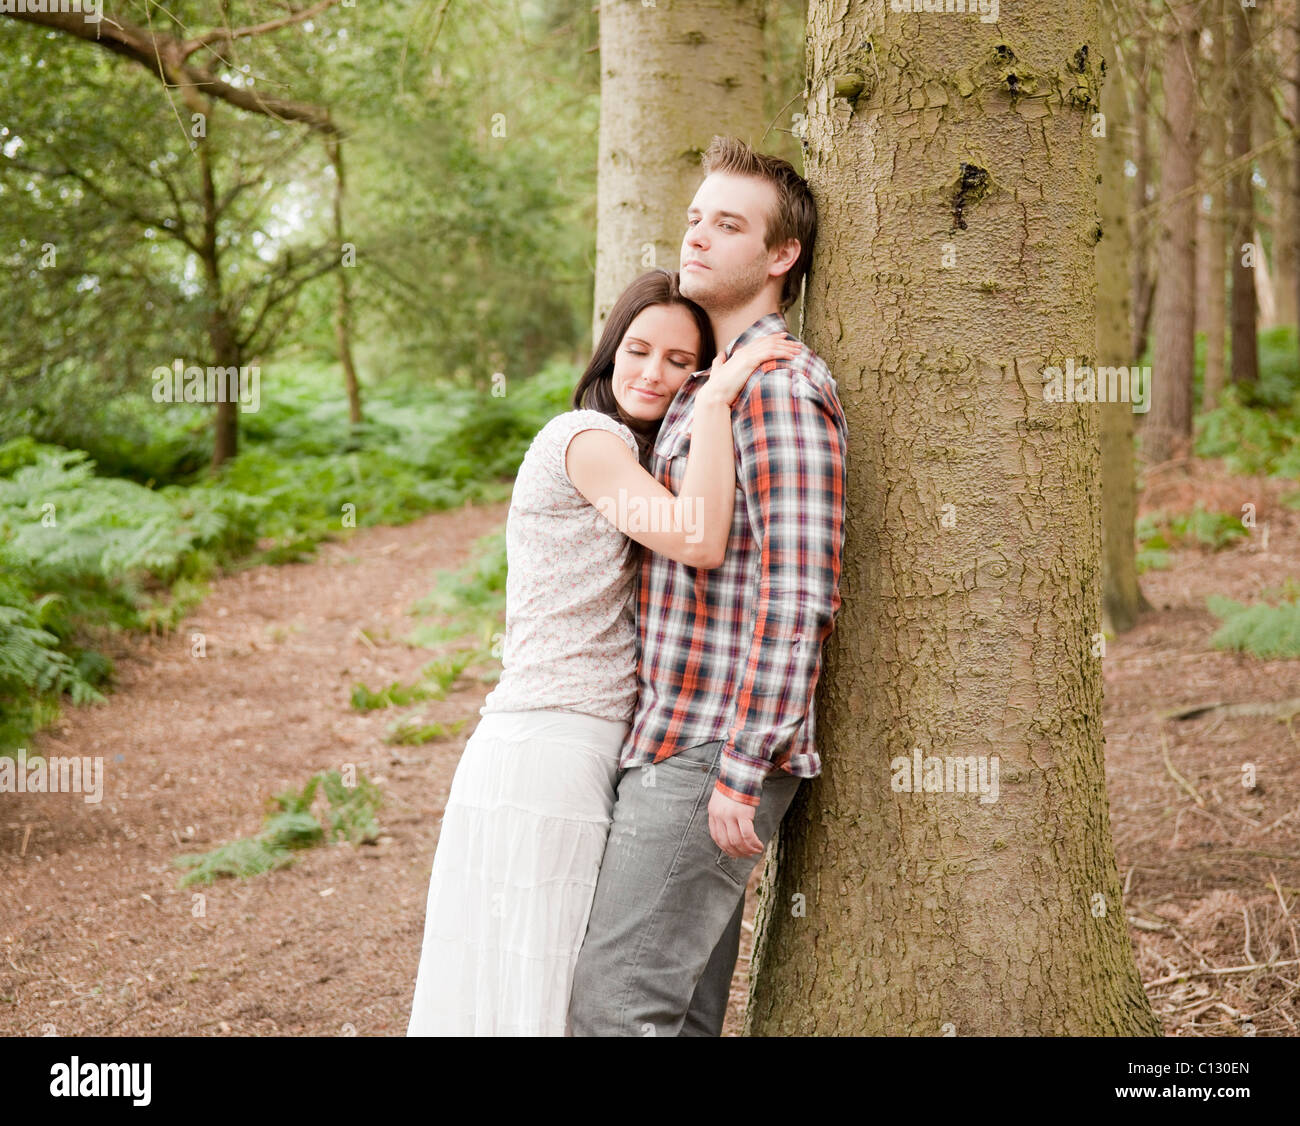 portrait of young couple in forest - Stock Image